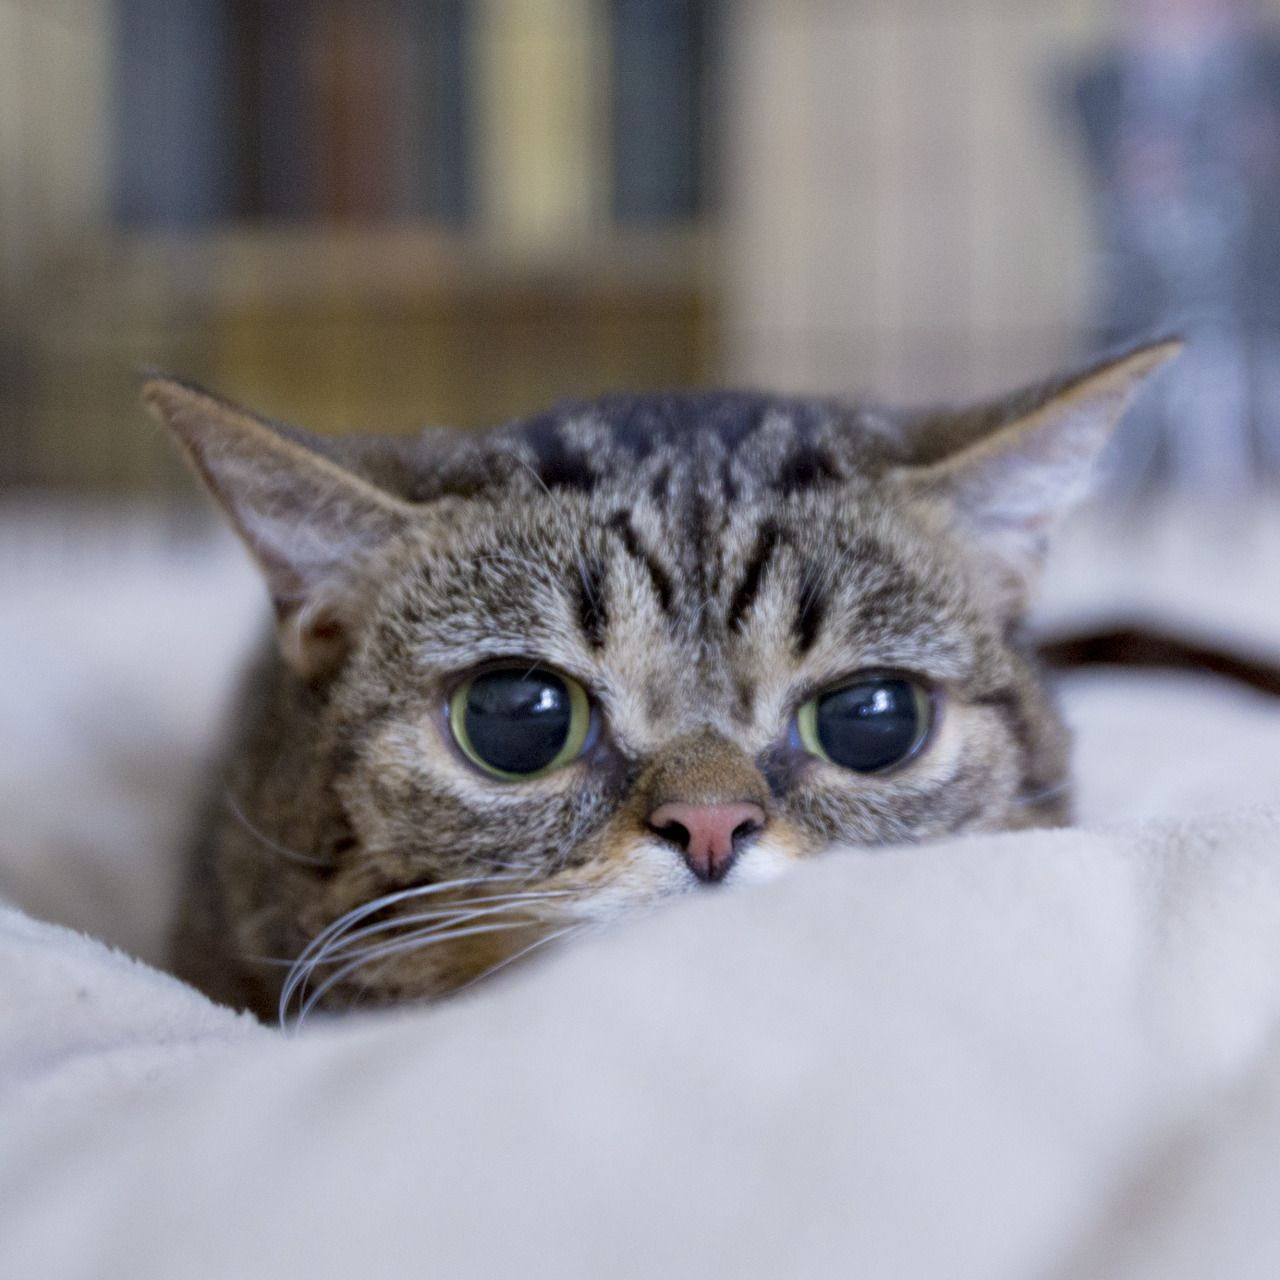 No one really knows what BUB sees. Cute cats, Animals